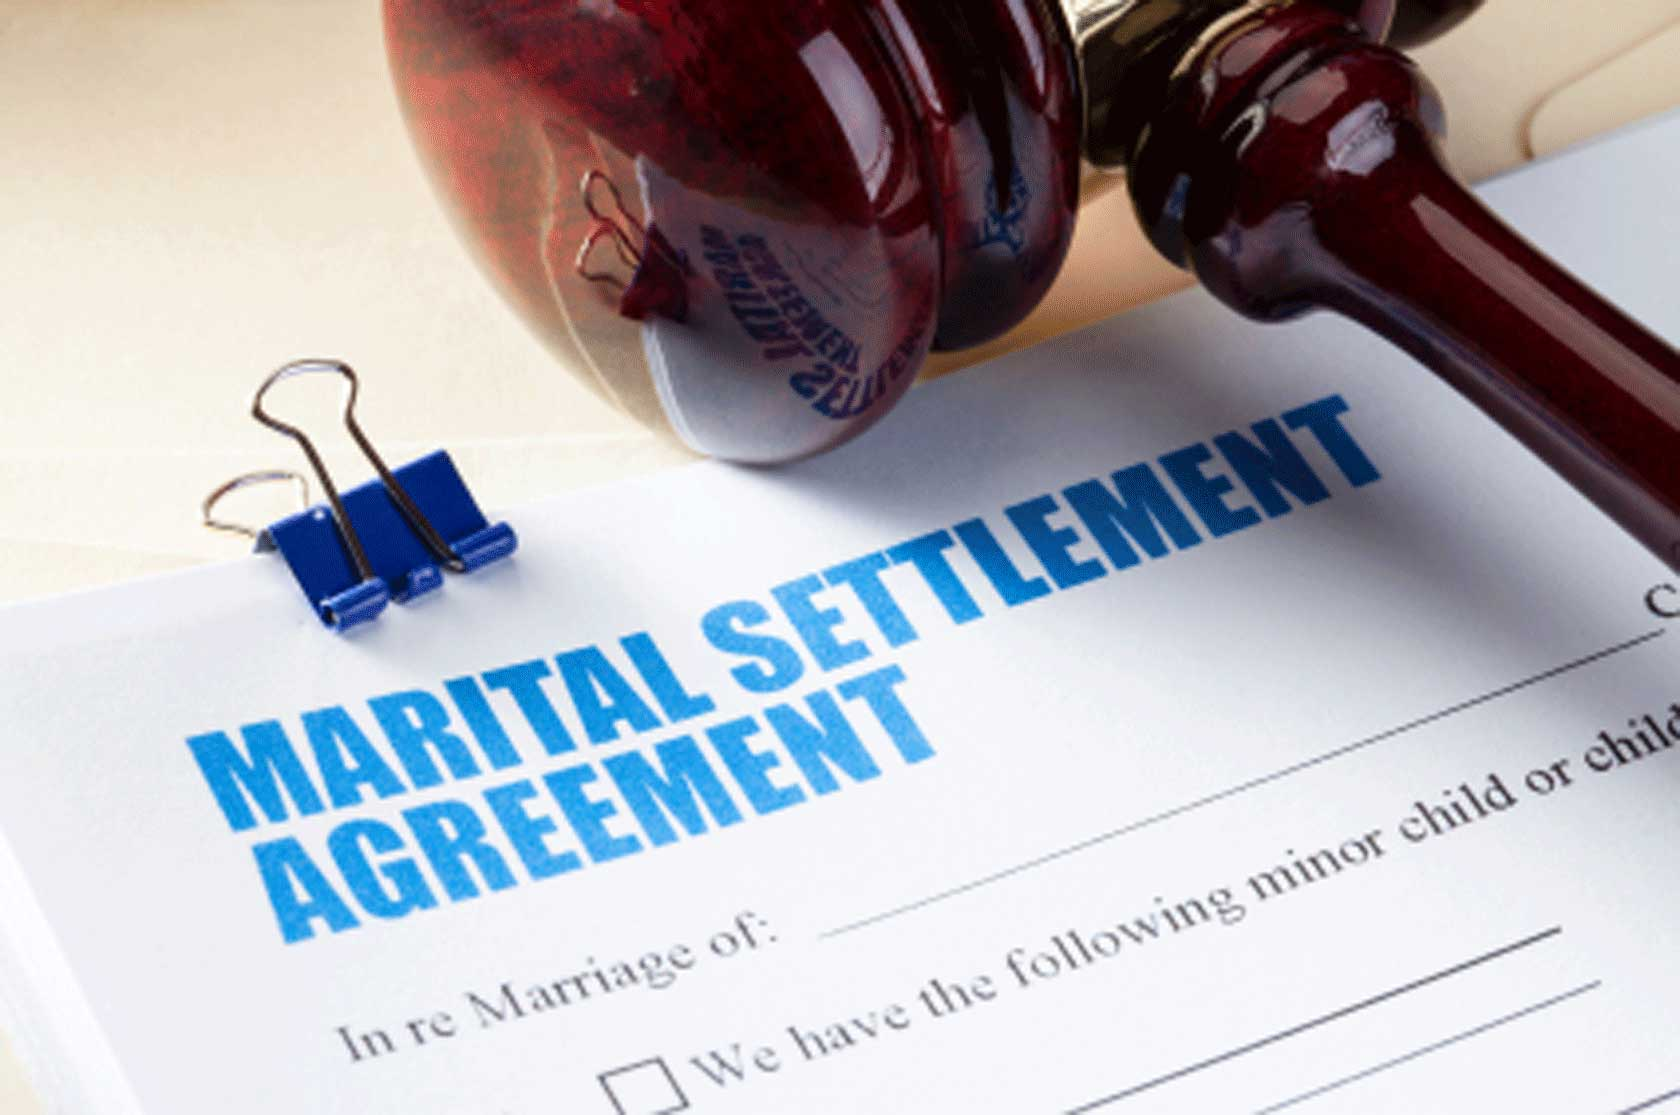 Marital Settlement Agreement Orlando Divorce Attorney Orange County Florida Divorce Lawyer Seminole County Attorneys Divorce Agreement Osceola County Lawyers